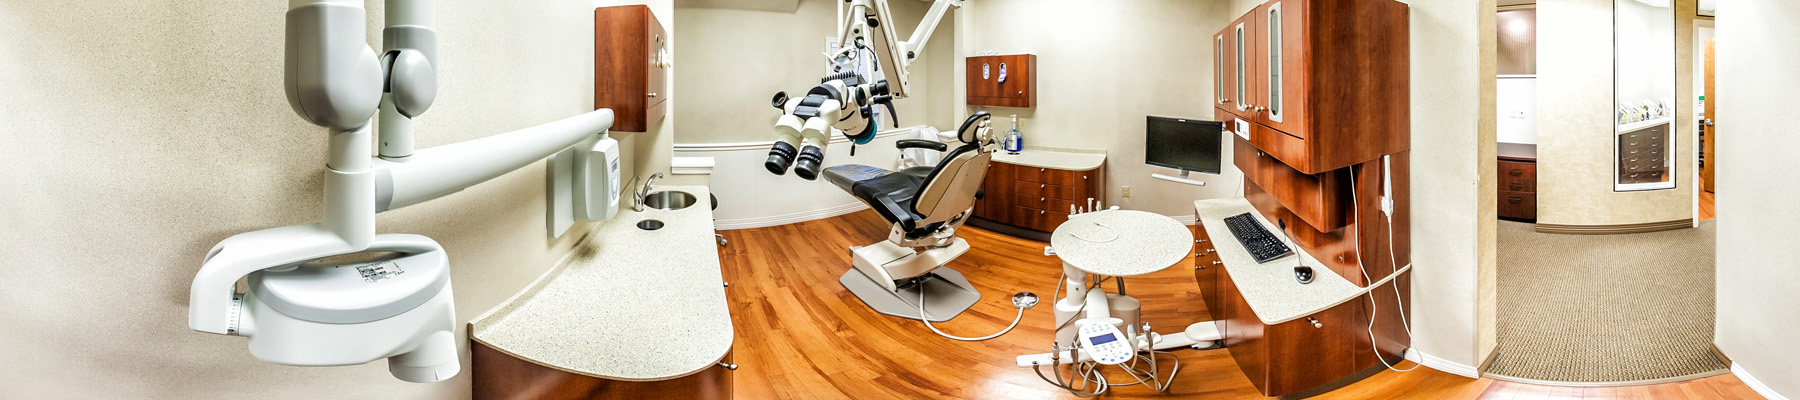 TOWNE-DENTAL-1800x400